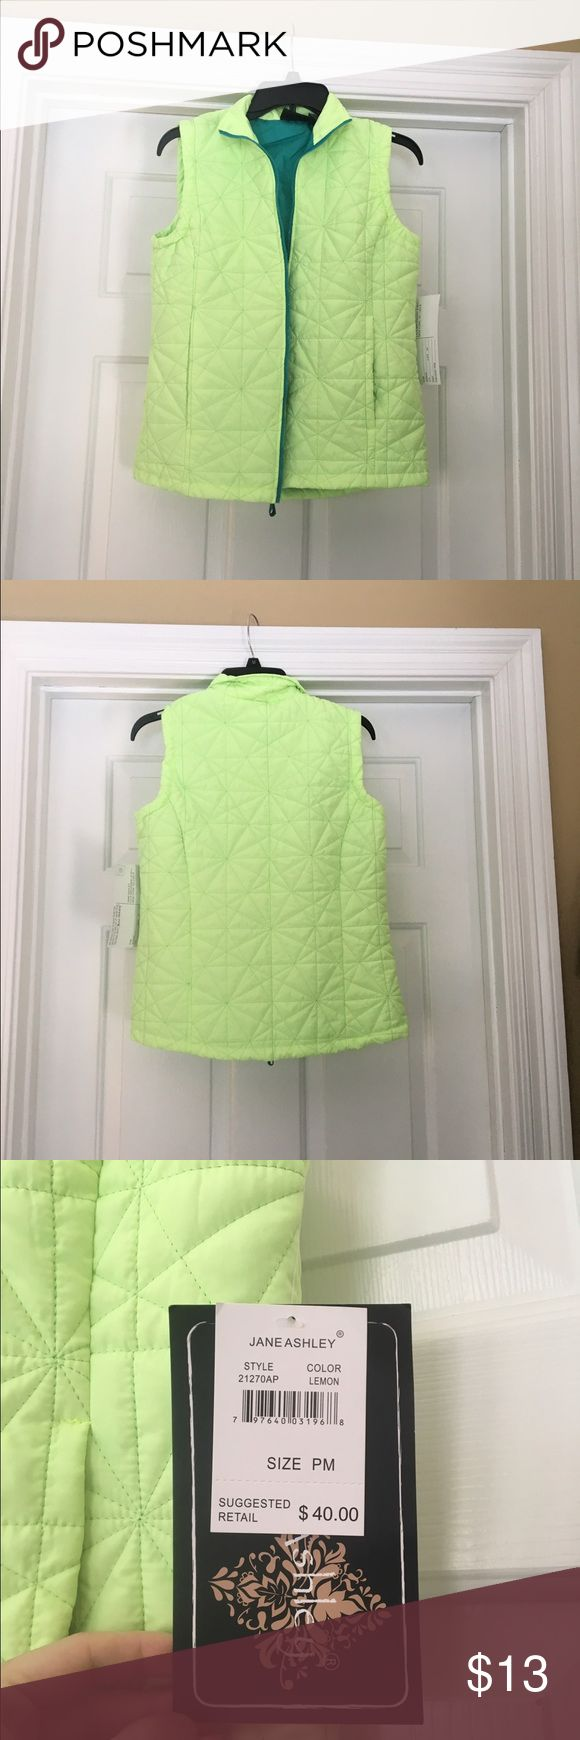 NWT Jane Ashley Light green zip up vest New with tags's and in excellent condition. Made by Jane Ashley and is a petite medium. Light green zip up the vest jane ashley Jackets & Coats Vests